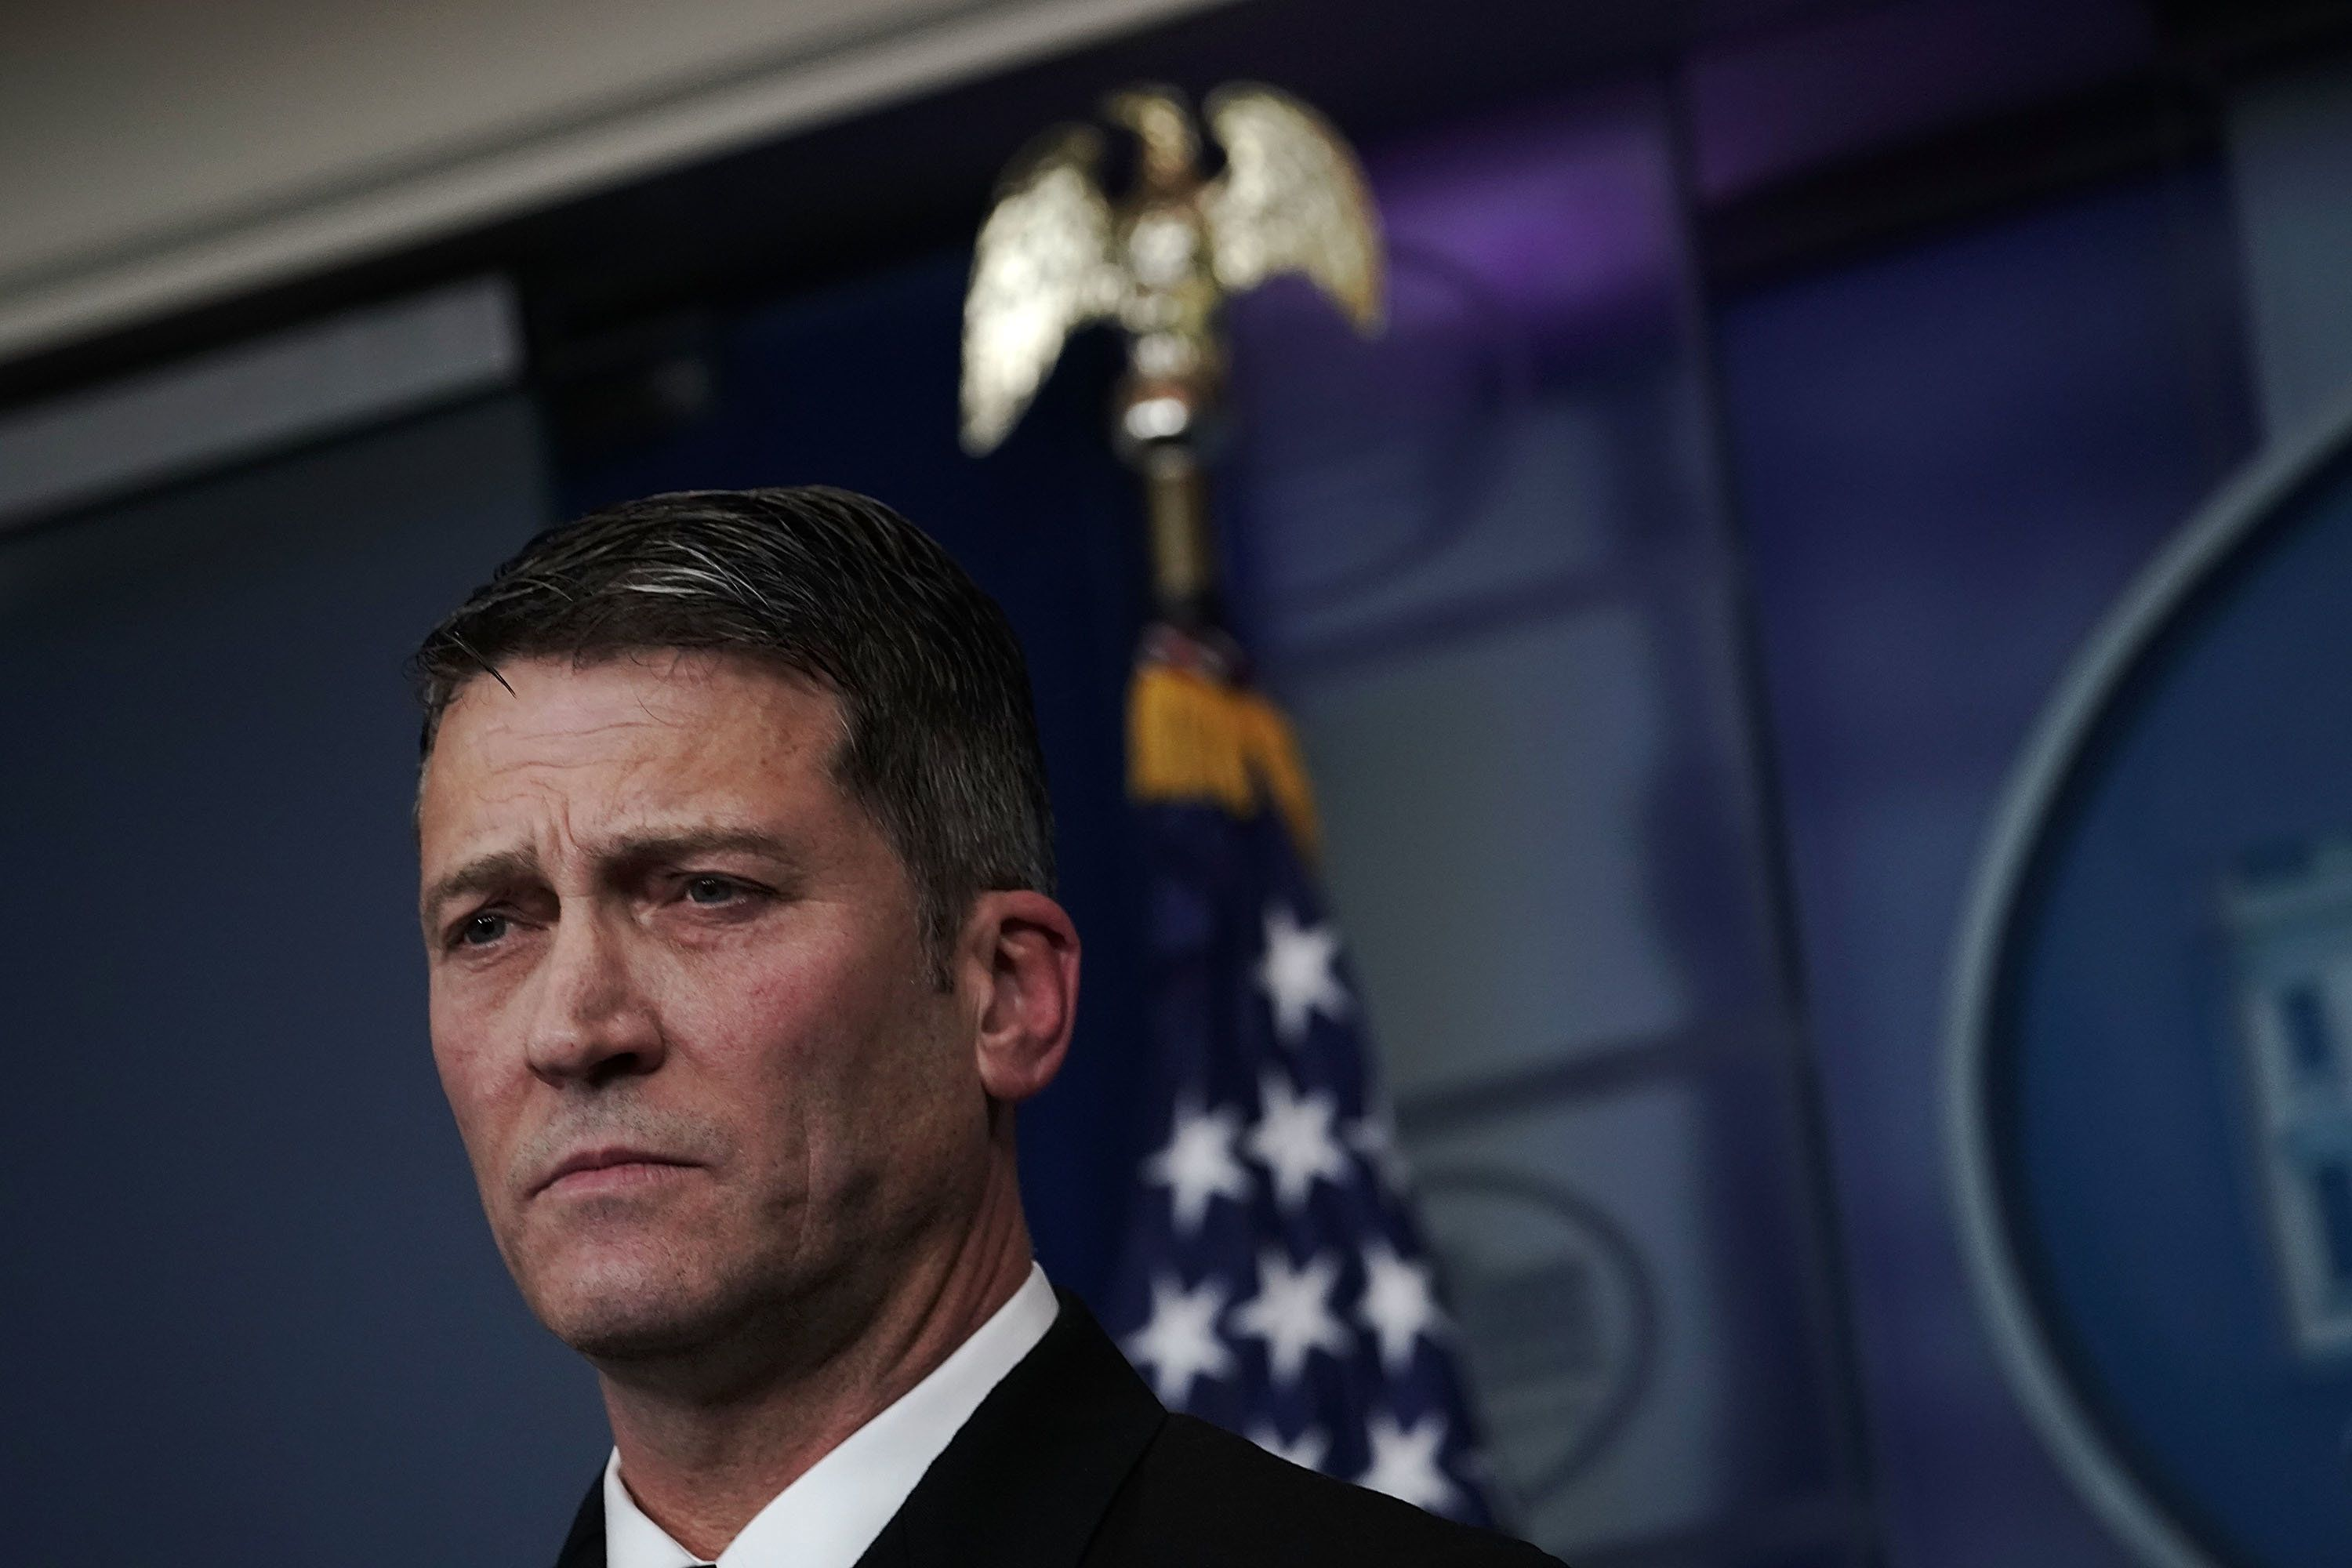 Pence's doctor accused Ronny Jackson of misconduct while treating second lady